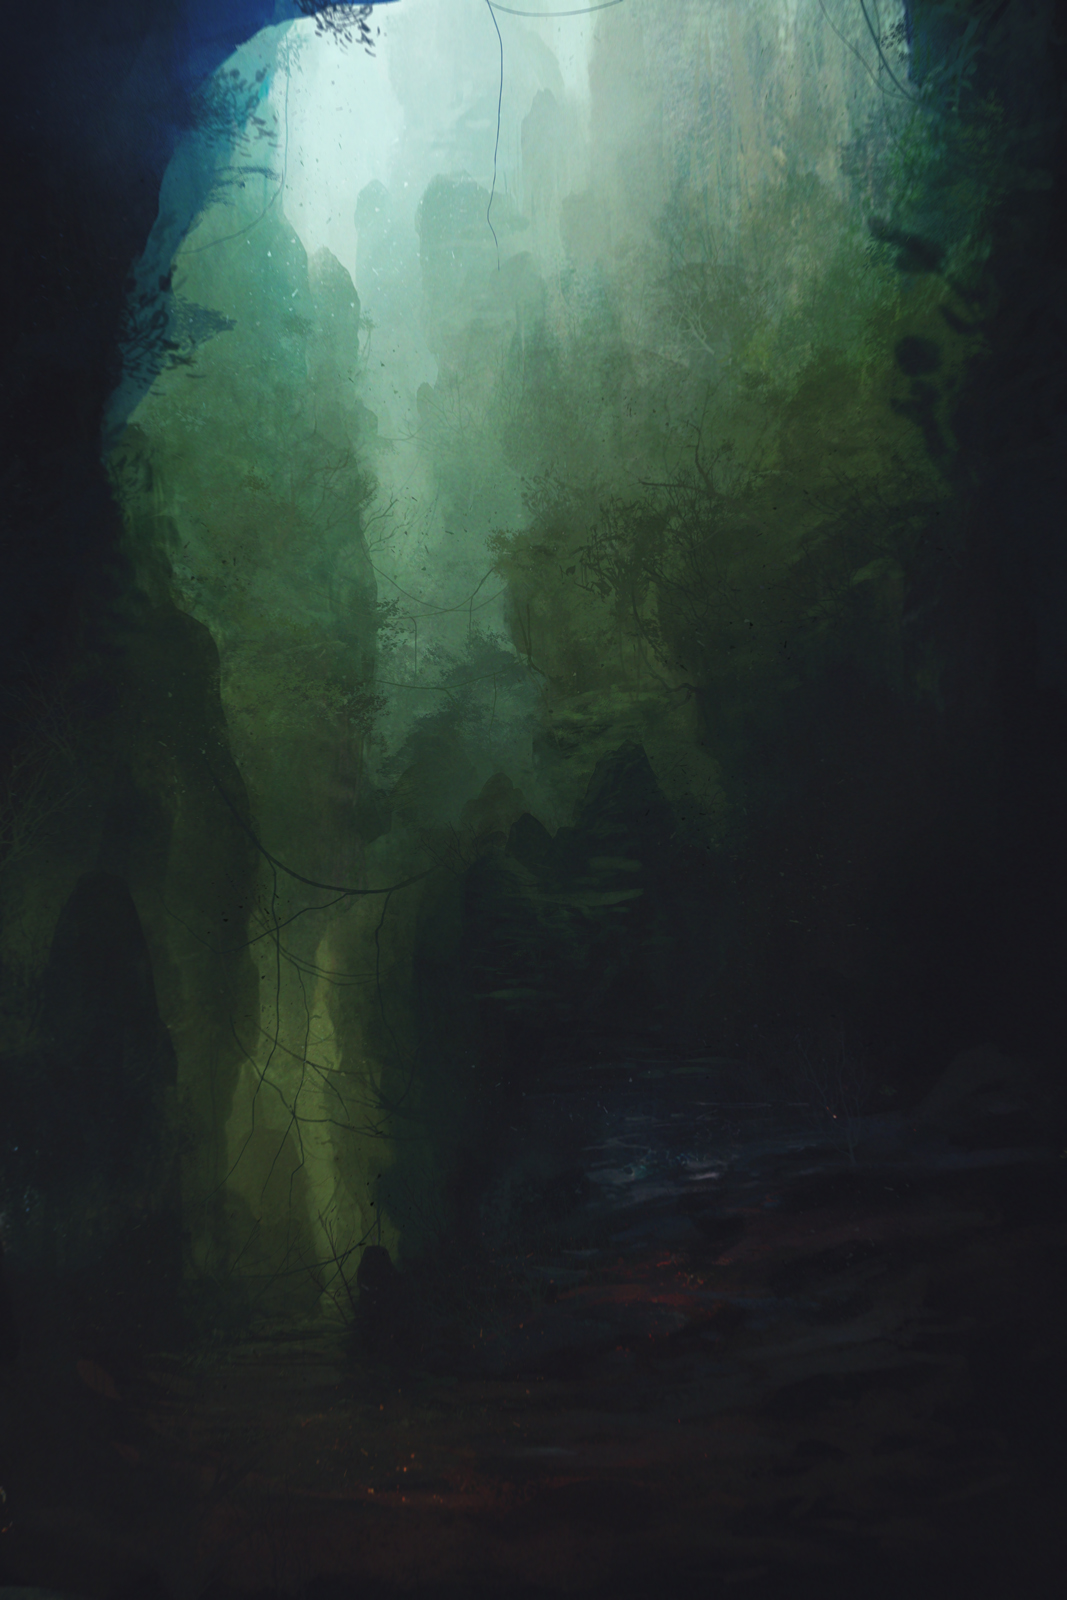 Jungle_Cave by GabrielWigren